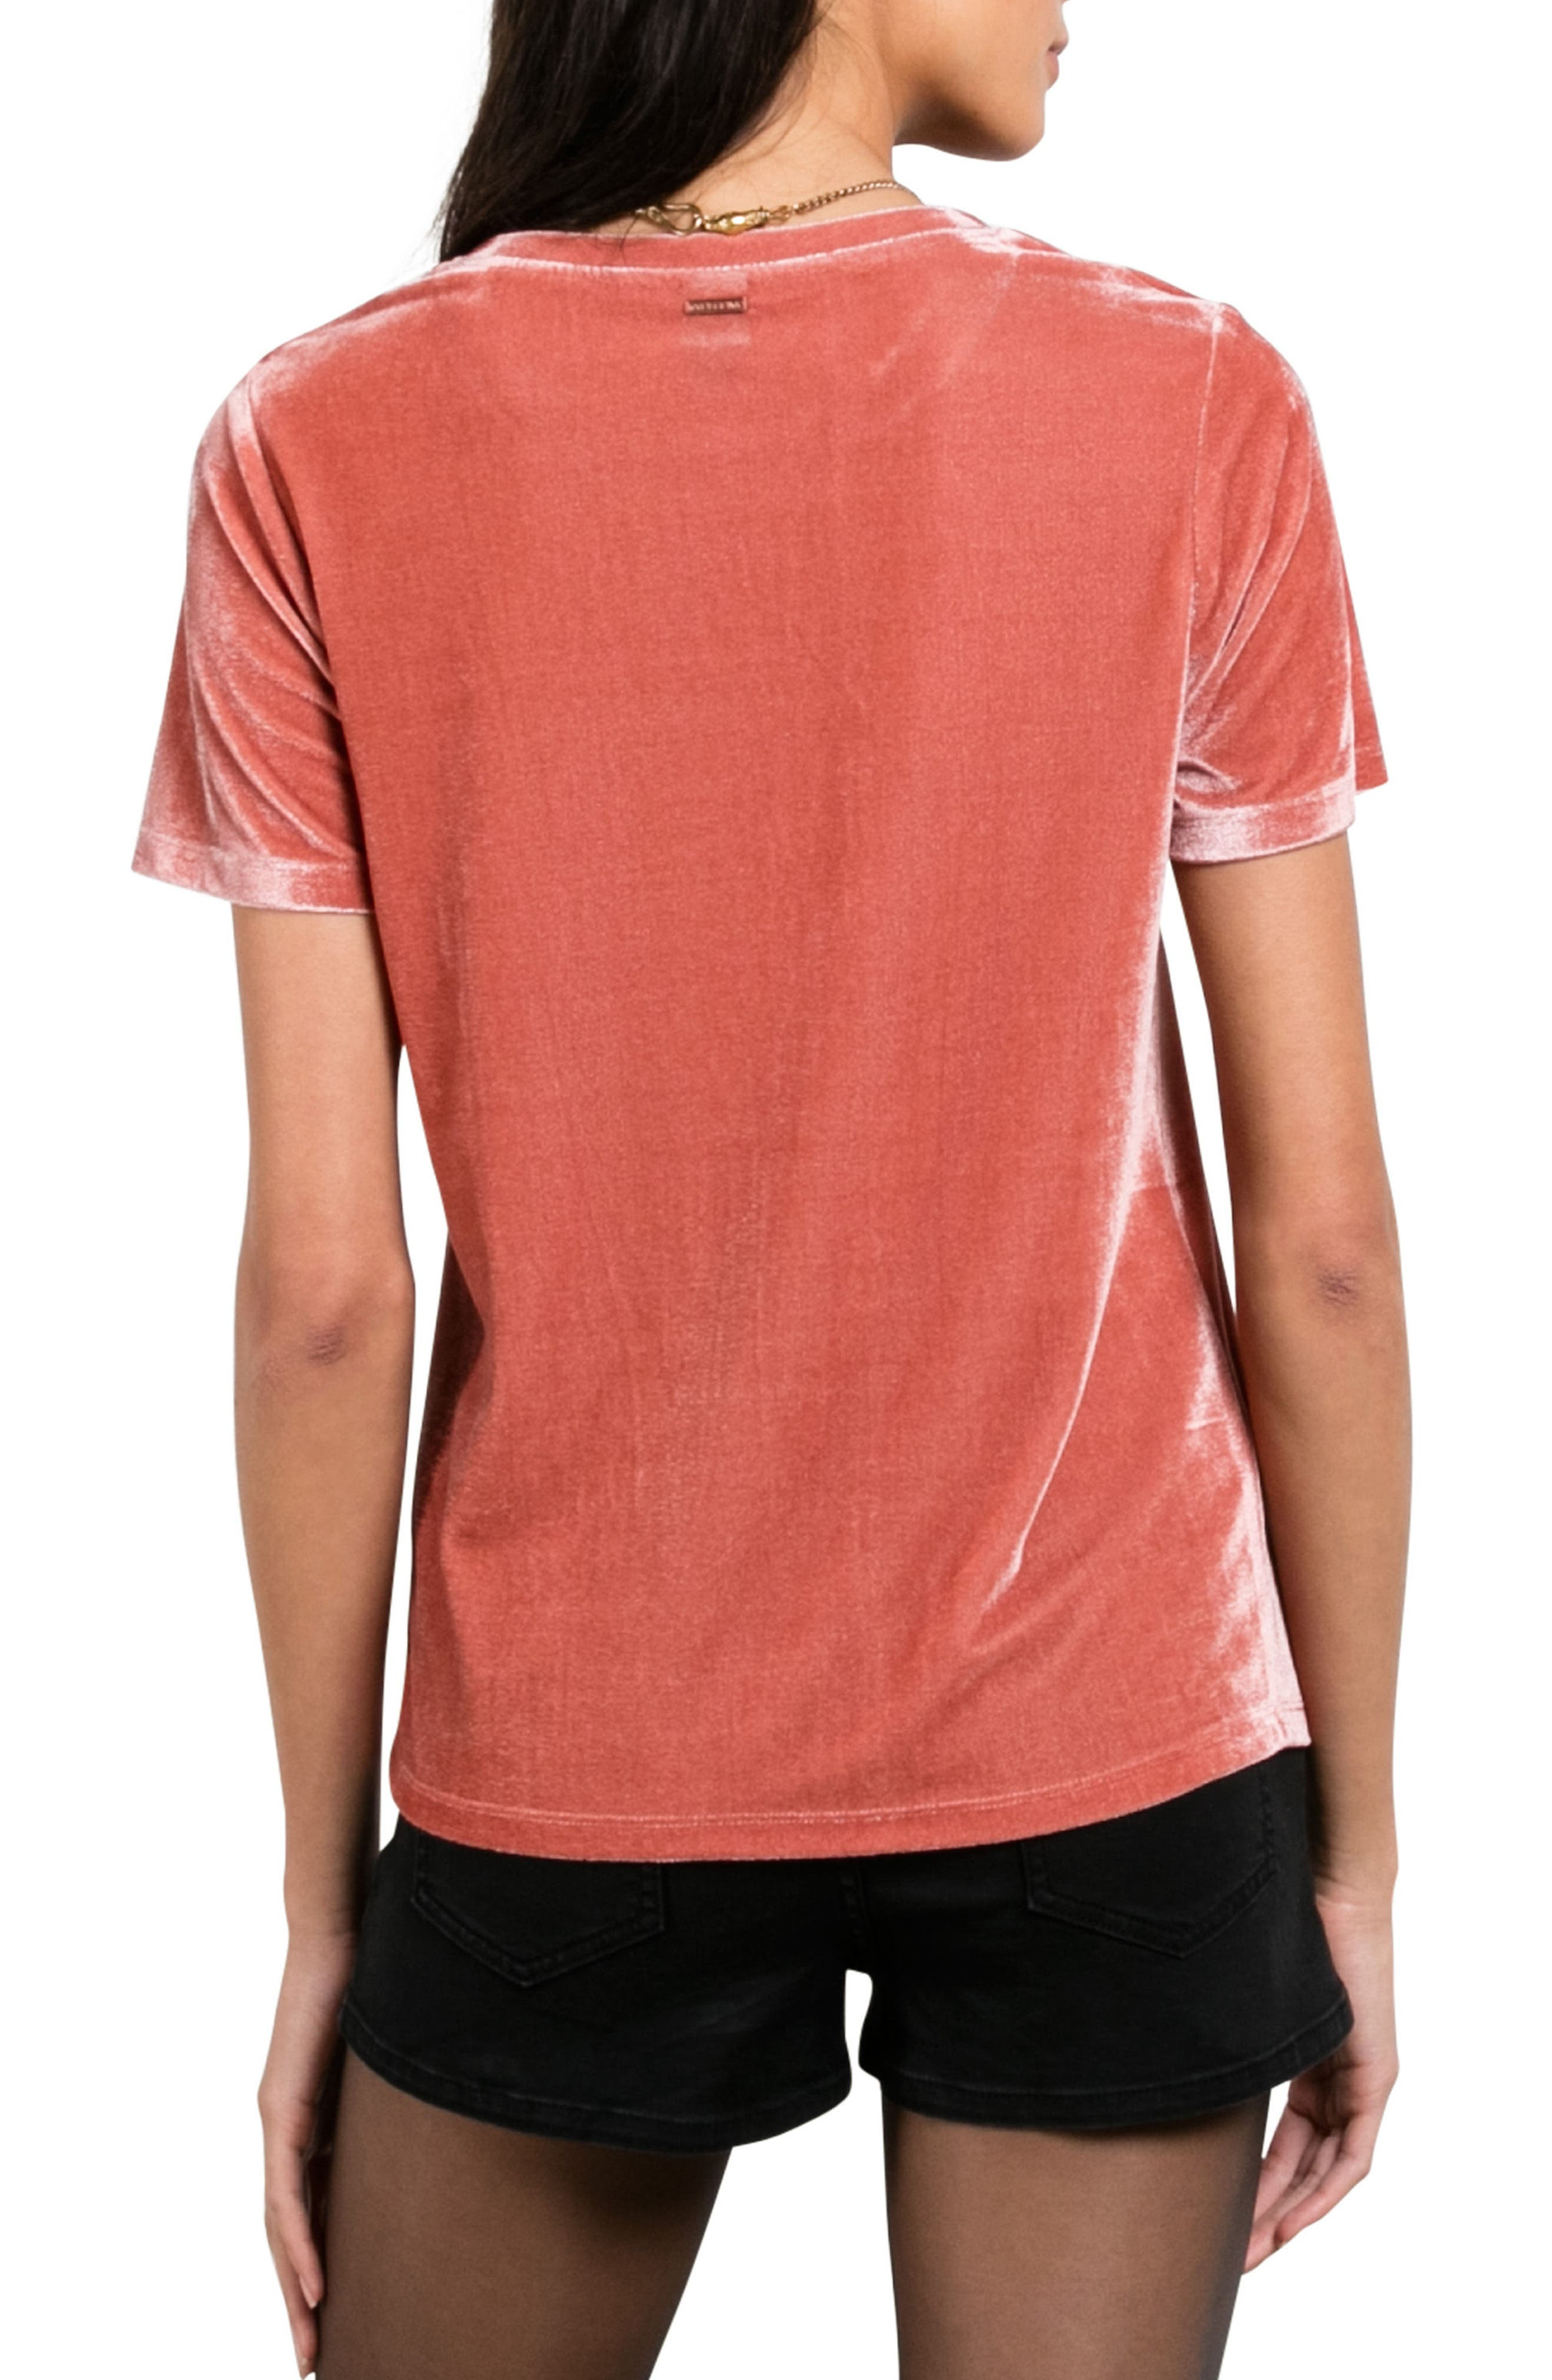 Velour You In Tee,                             Alternate thumbnail 2, color,                             600